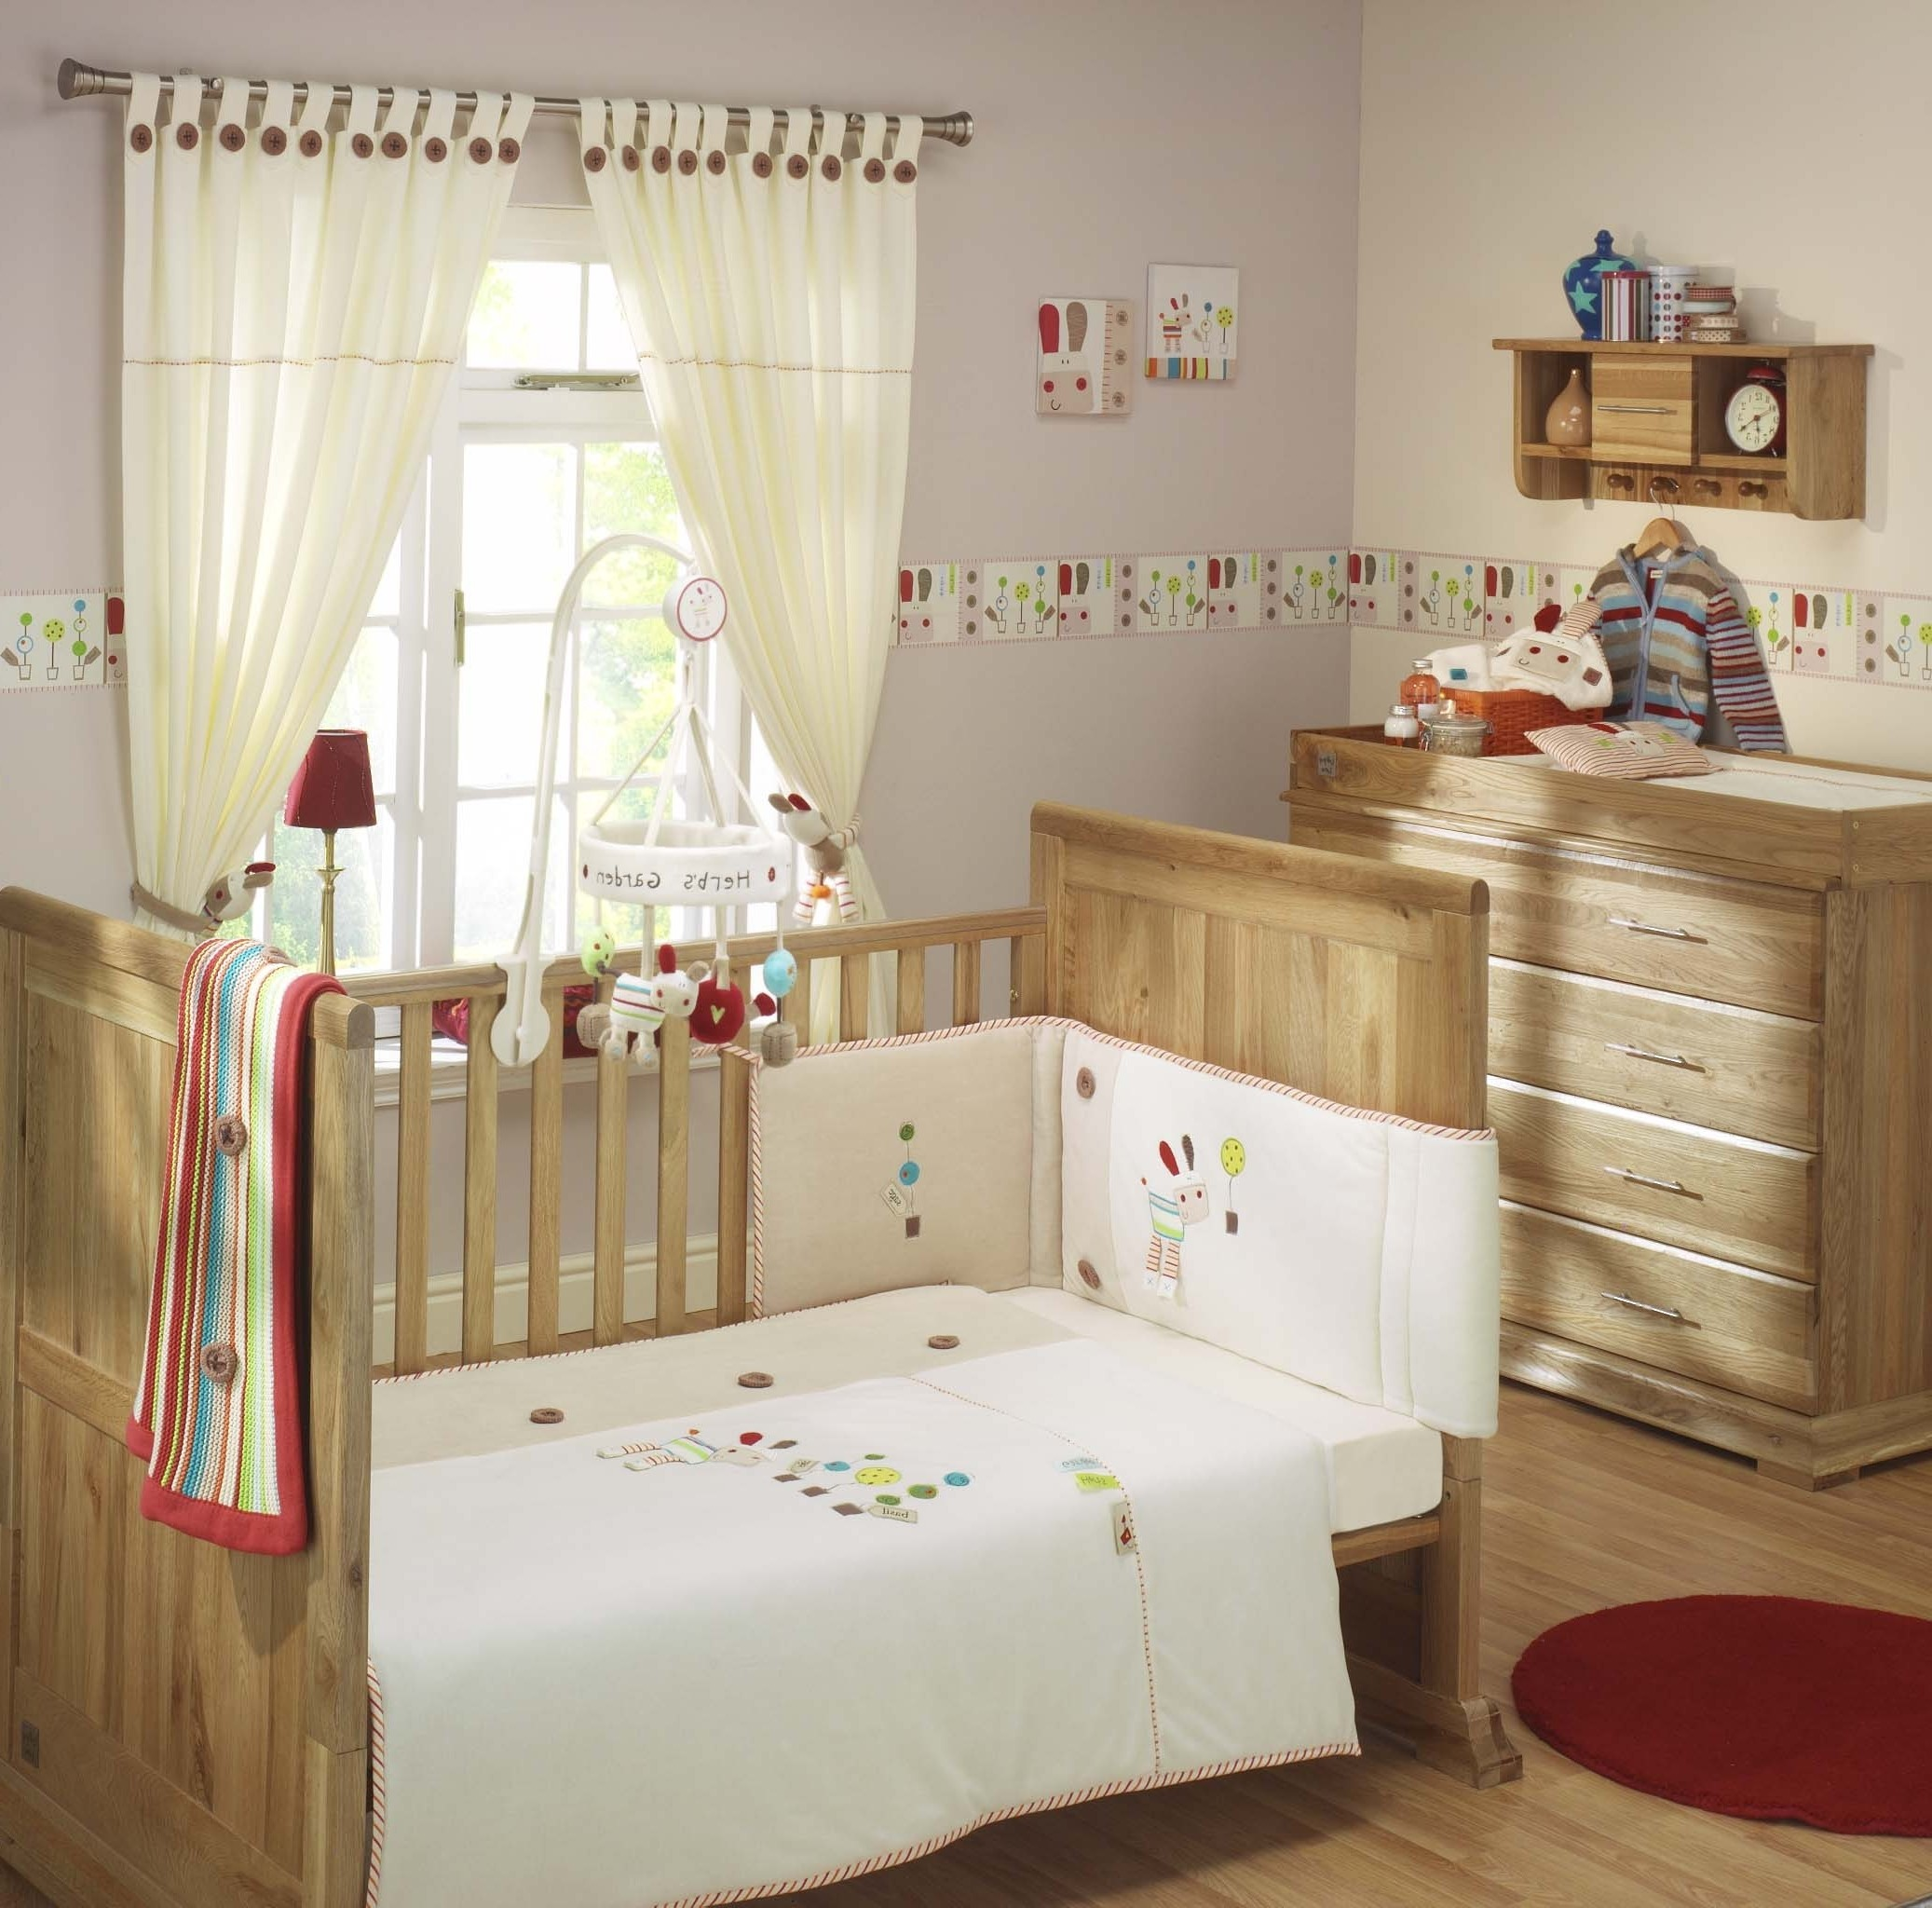 Res: 2074x2048, ... Baby Nursery : Cool Bedroom Wallpaper Ba Nursery Interior Brown Wooden With Baby Nursery Wallpaper Amazing ...